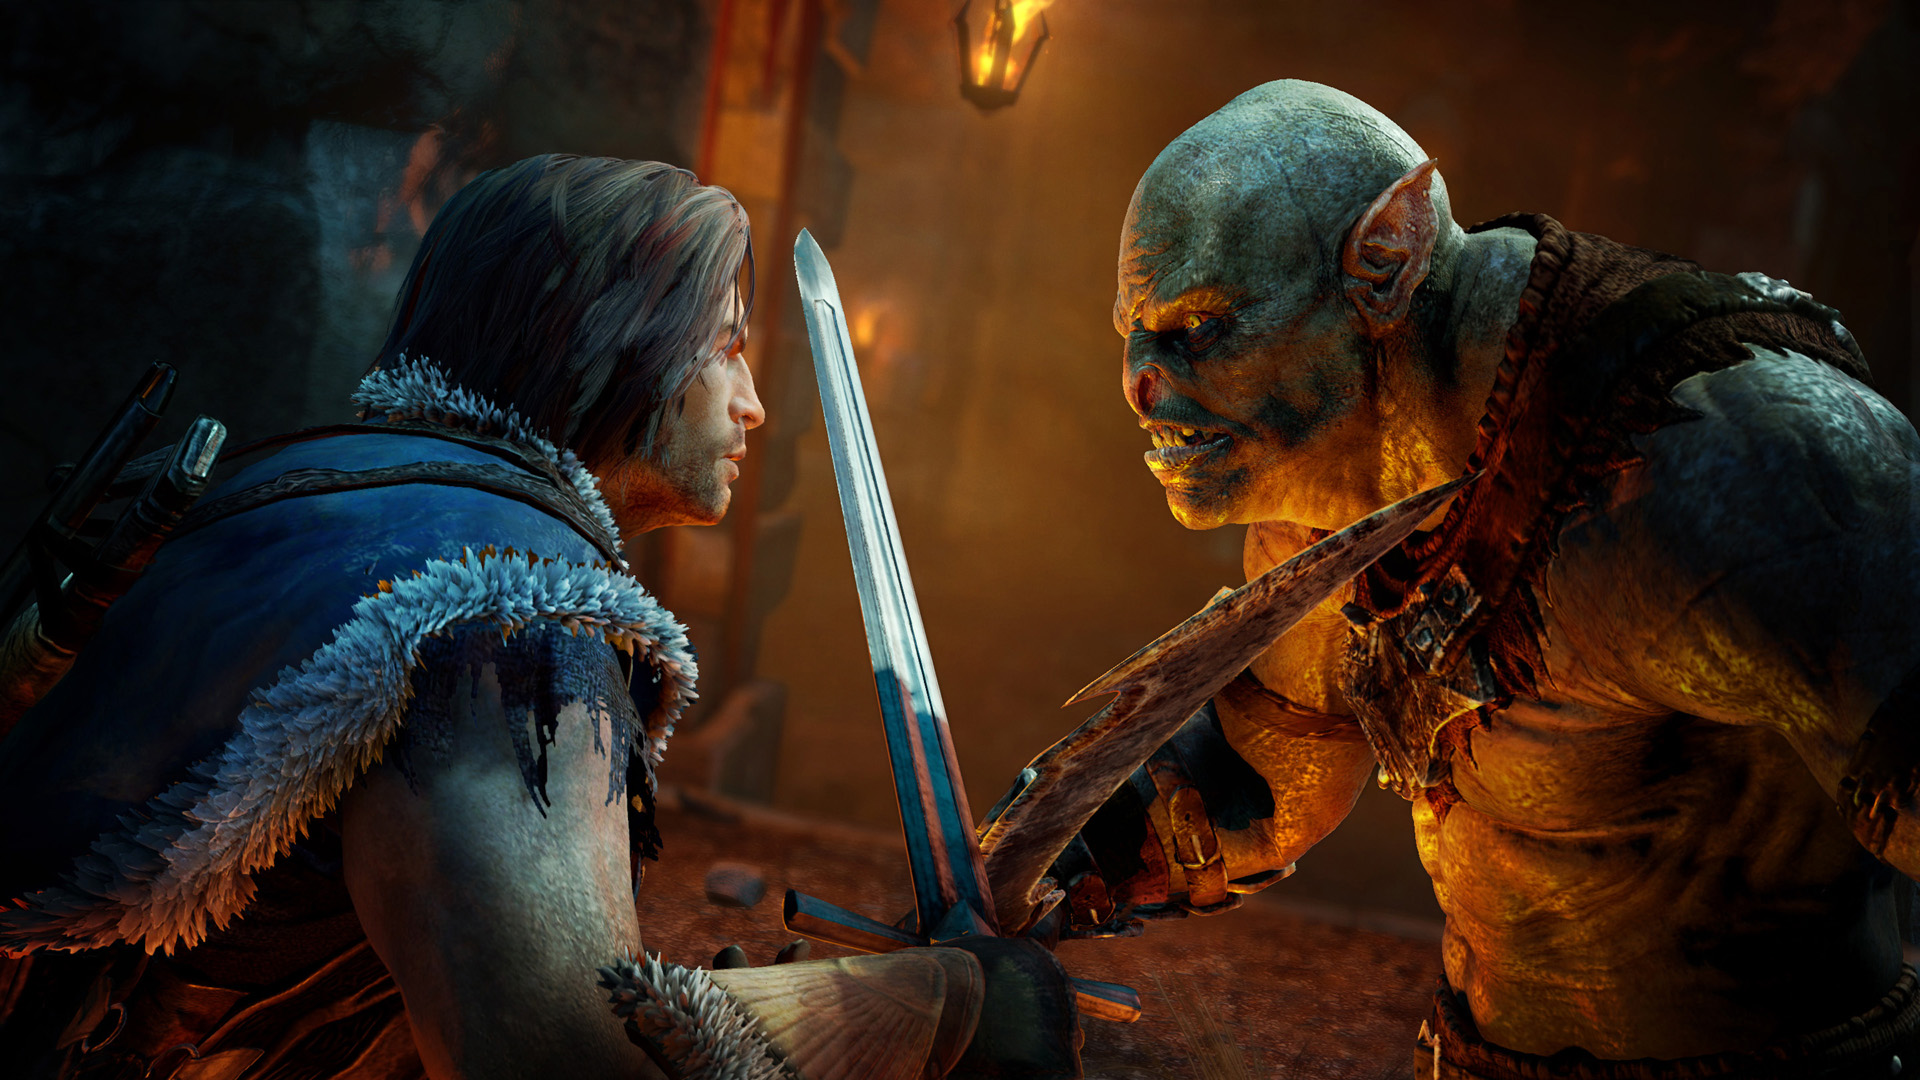 Middle Earth: Shadow of Mordor nos muestra su historia en un nuevo trailer [Video]